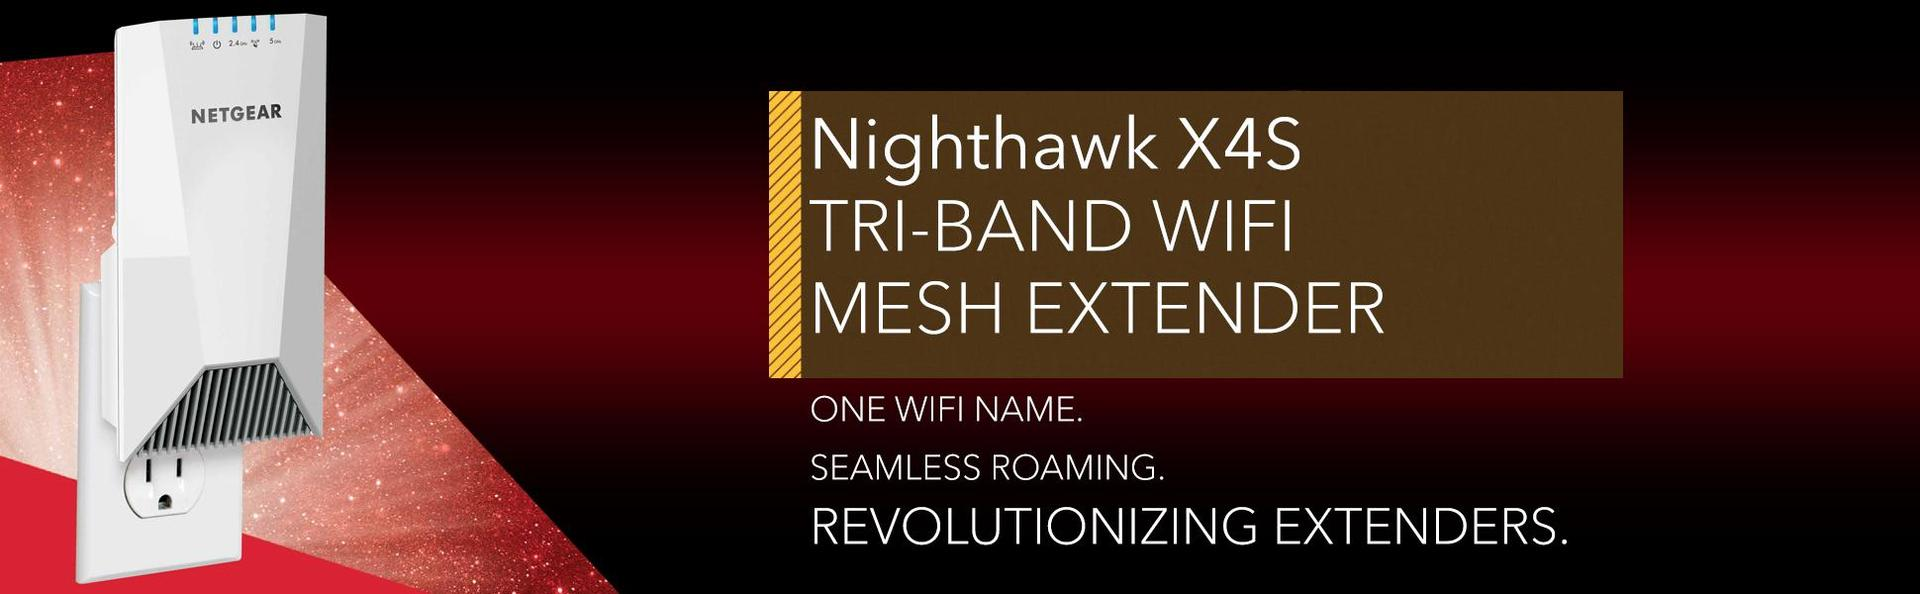 NETGEAR Nighthawk Mesh X4S WiFi Mesh Extender - Build your own whole home  mesh WiFi to eliminate dead zones (EX7500) - Newegg com